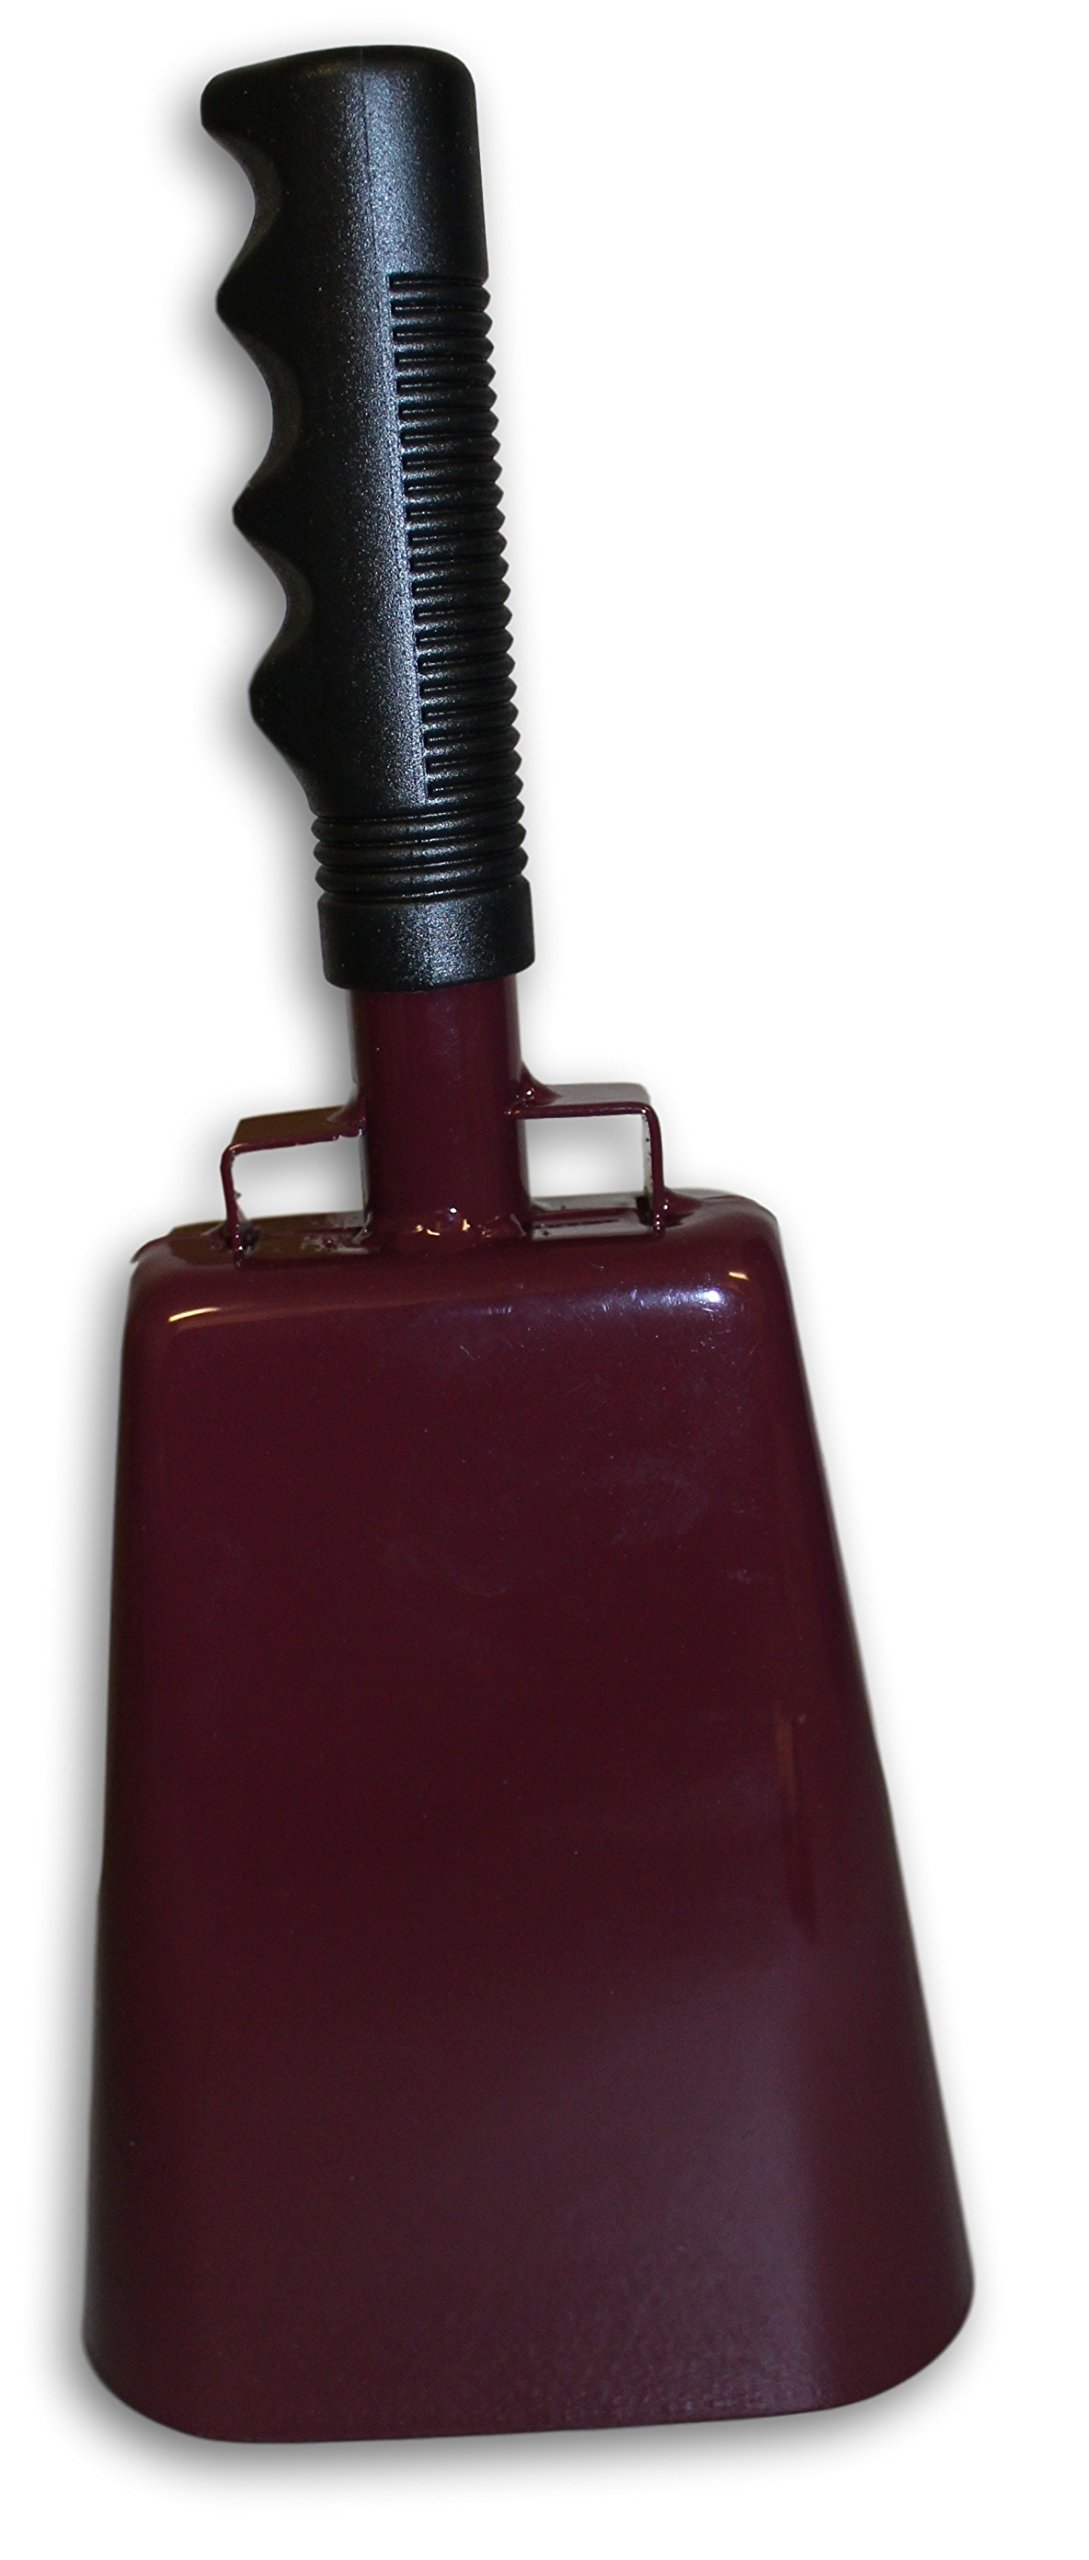 Toys+ Large 11 Inch Cowbell with Handle Maroon by Toys+